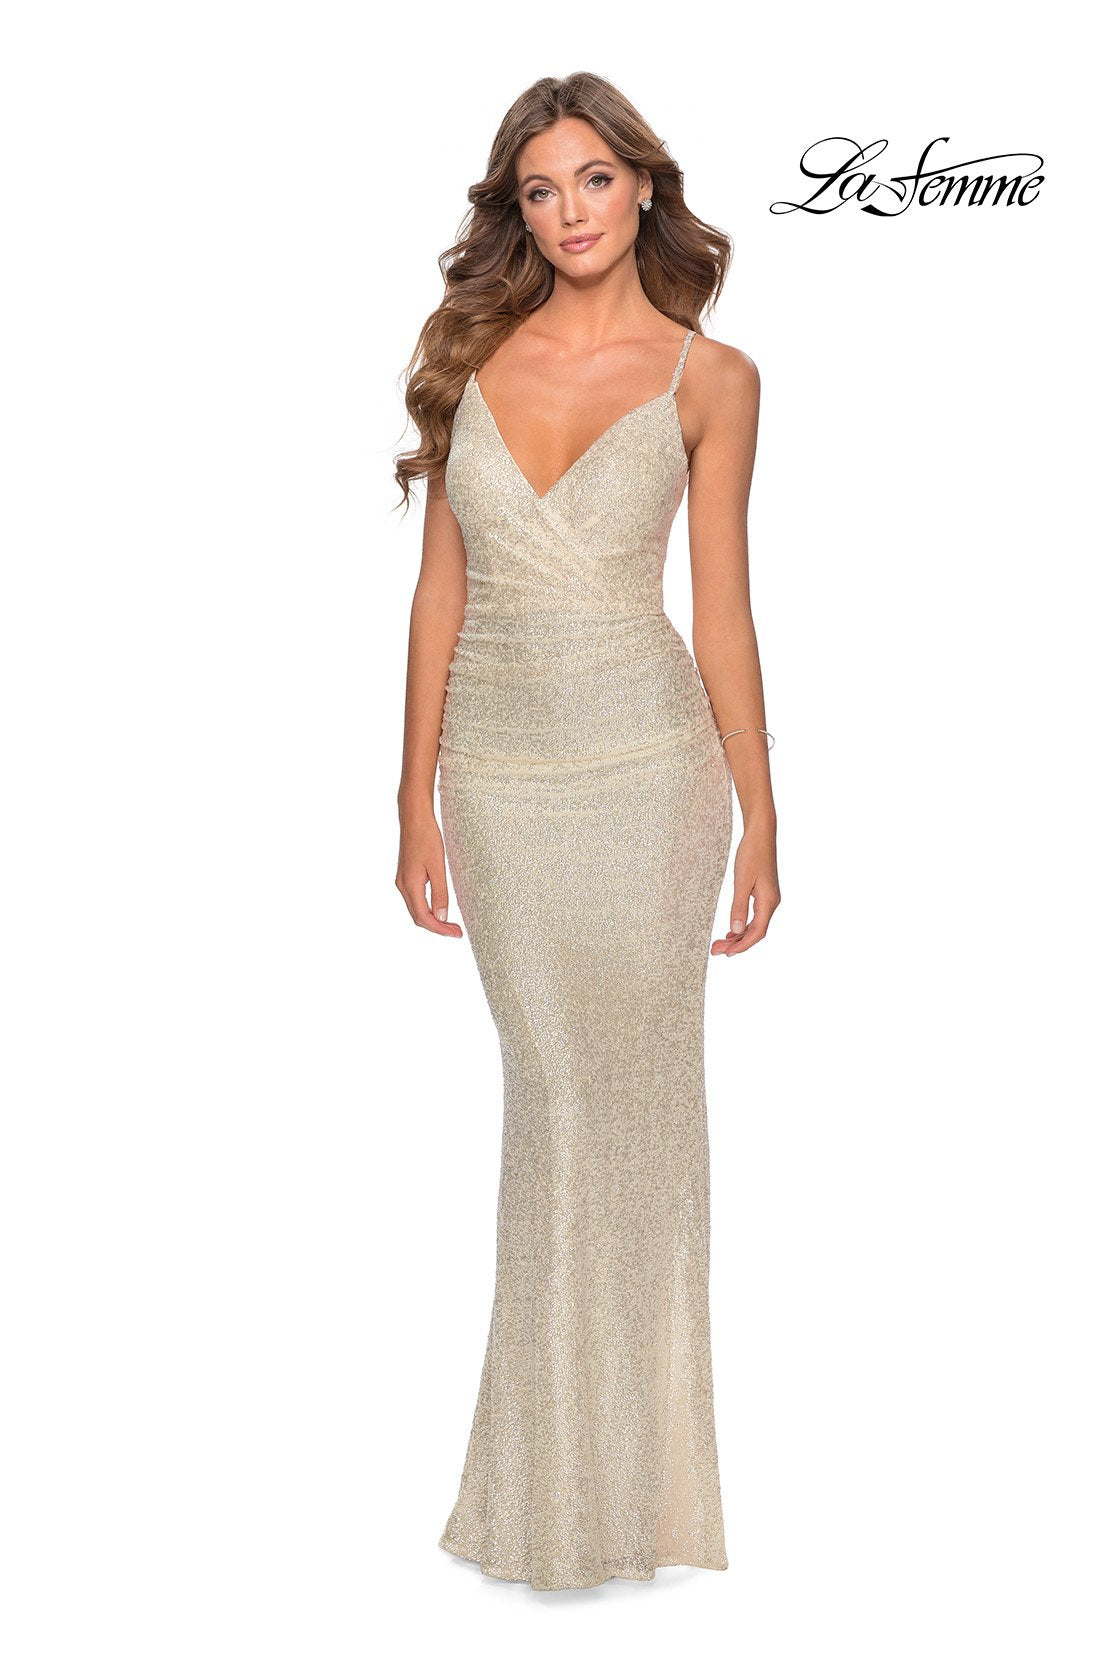 La Femme 28335 prom dress images.  La Femme 28335 is available in these colors: Champagne, Light Blue, Silver.